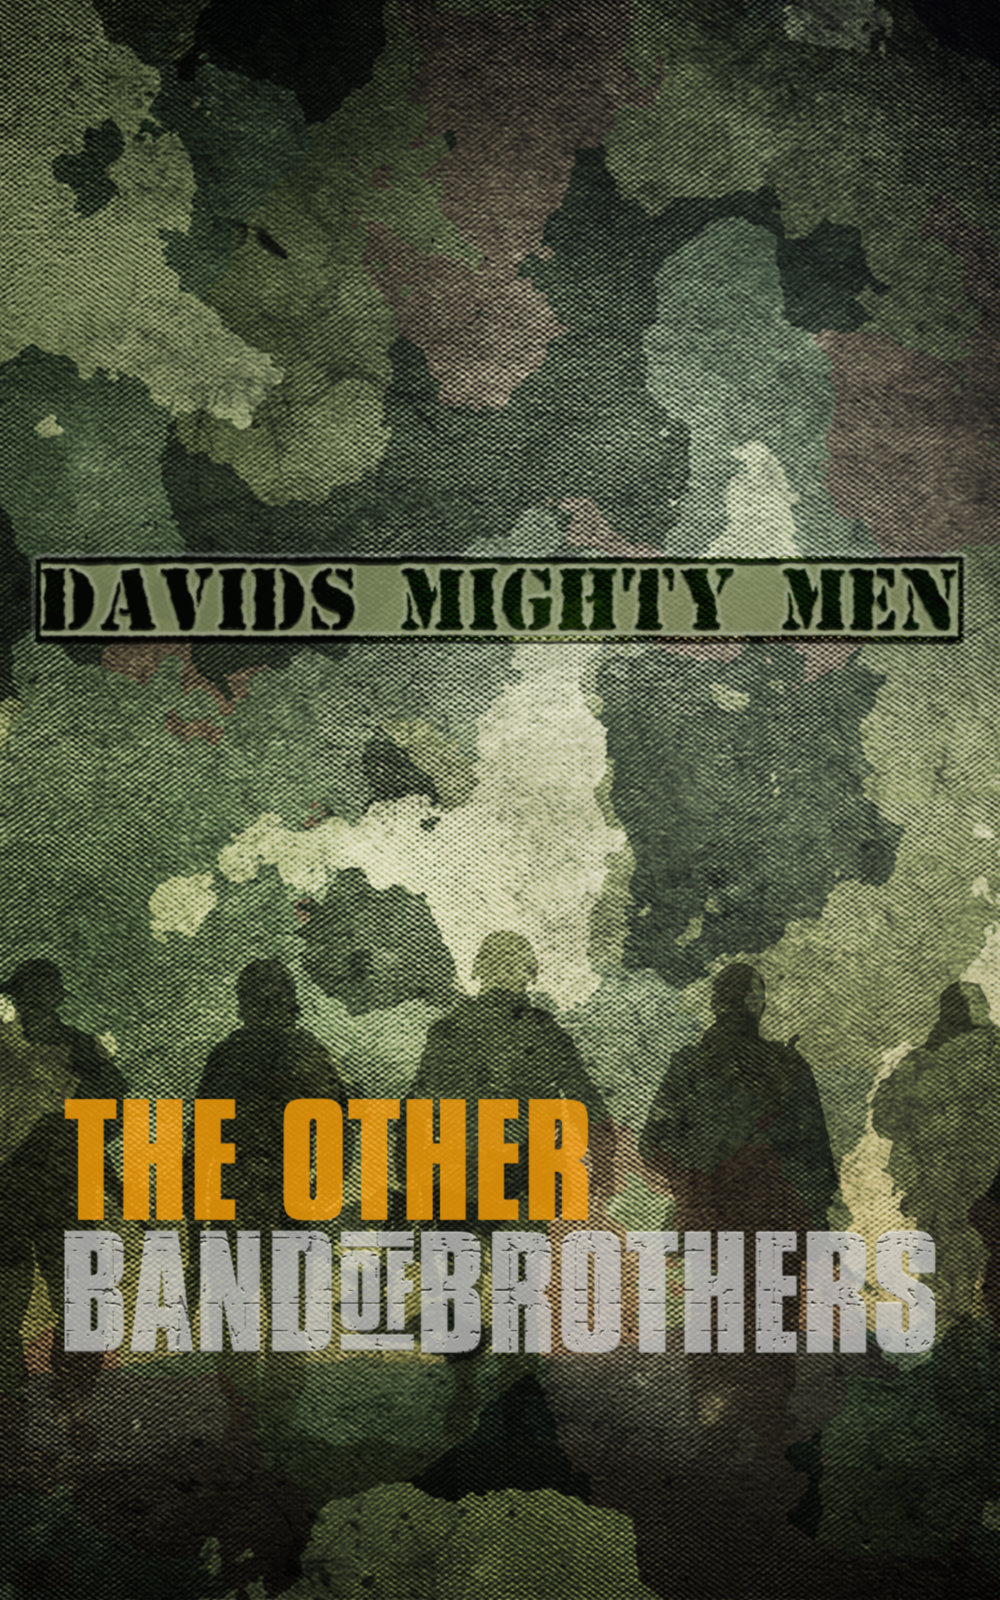 Davids Mighty Men The Other Band Of Brothers